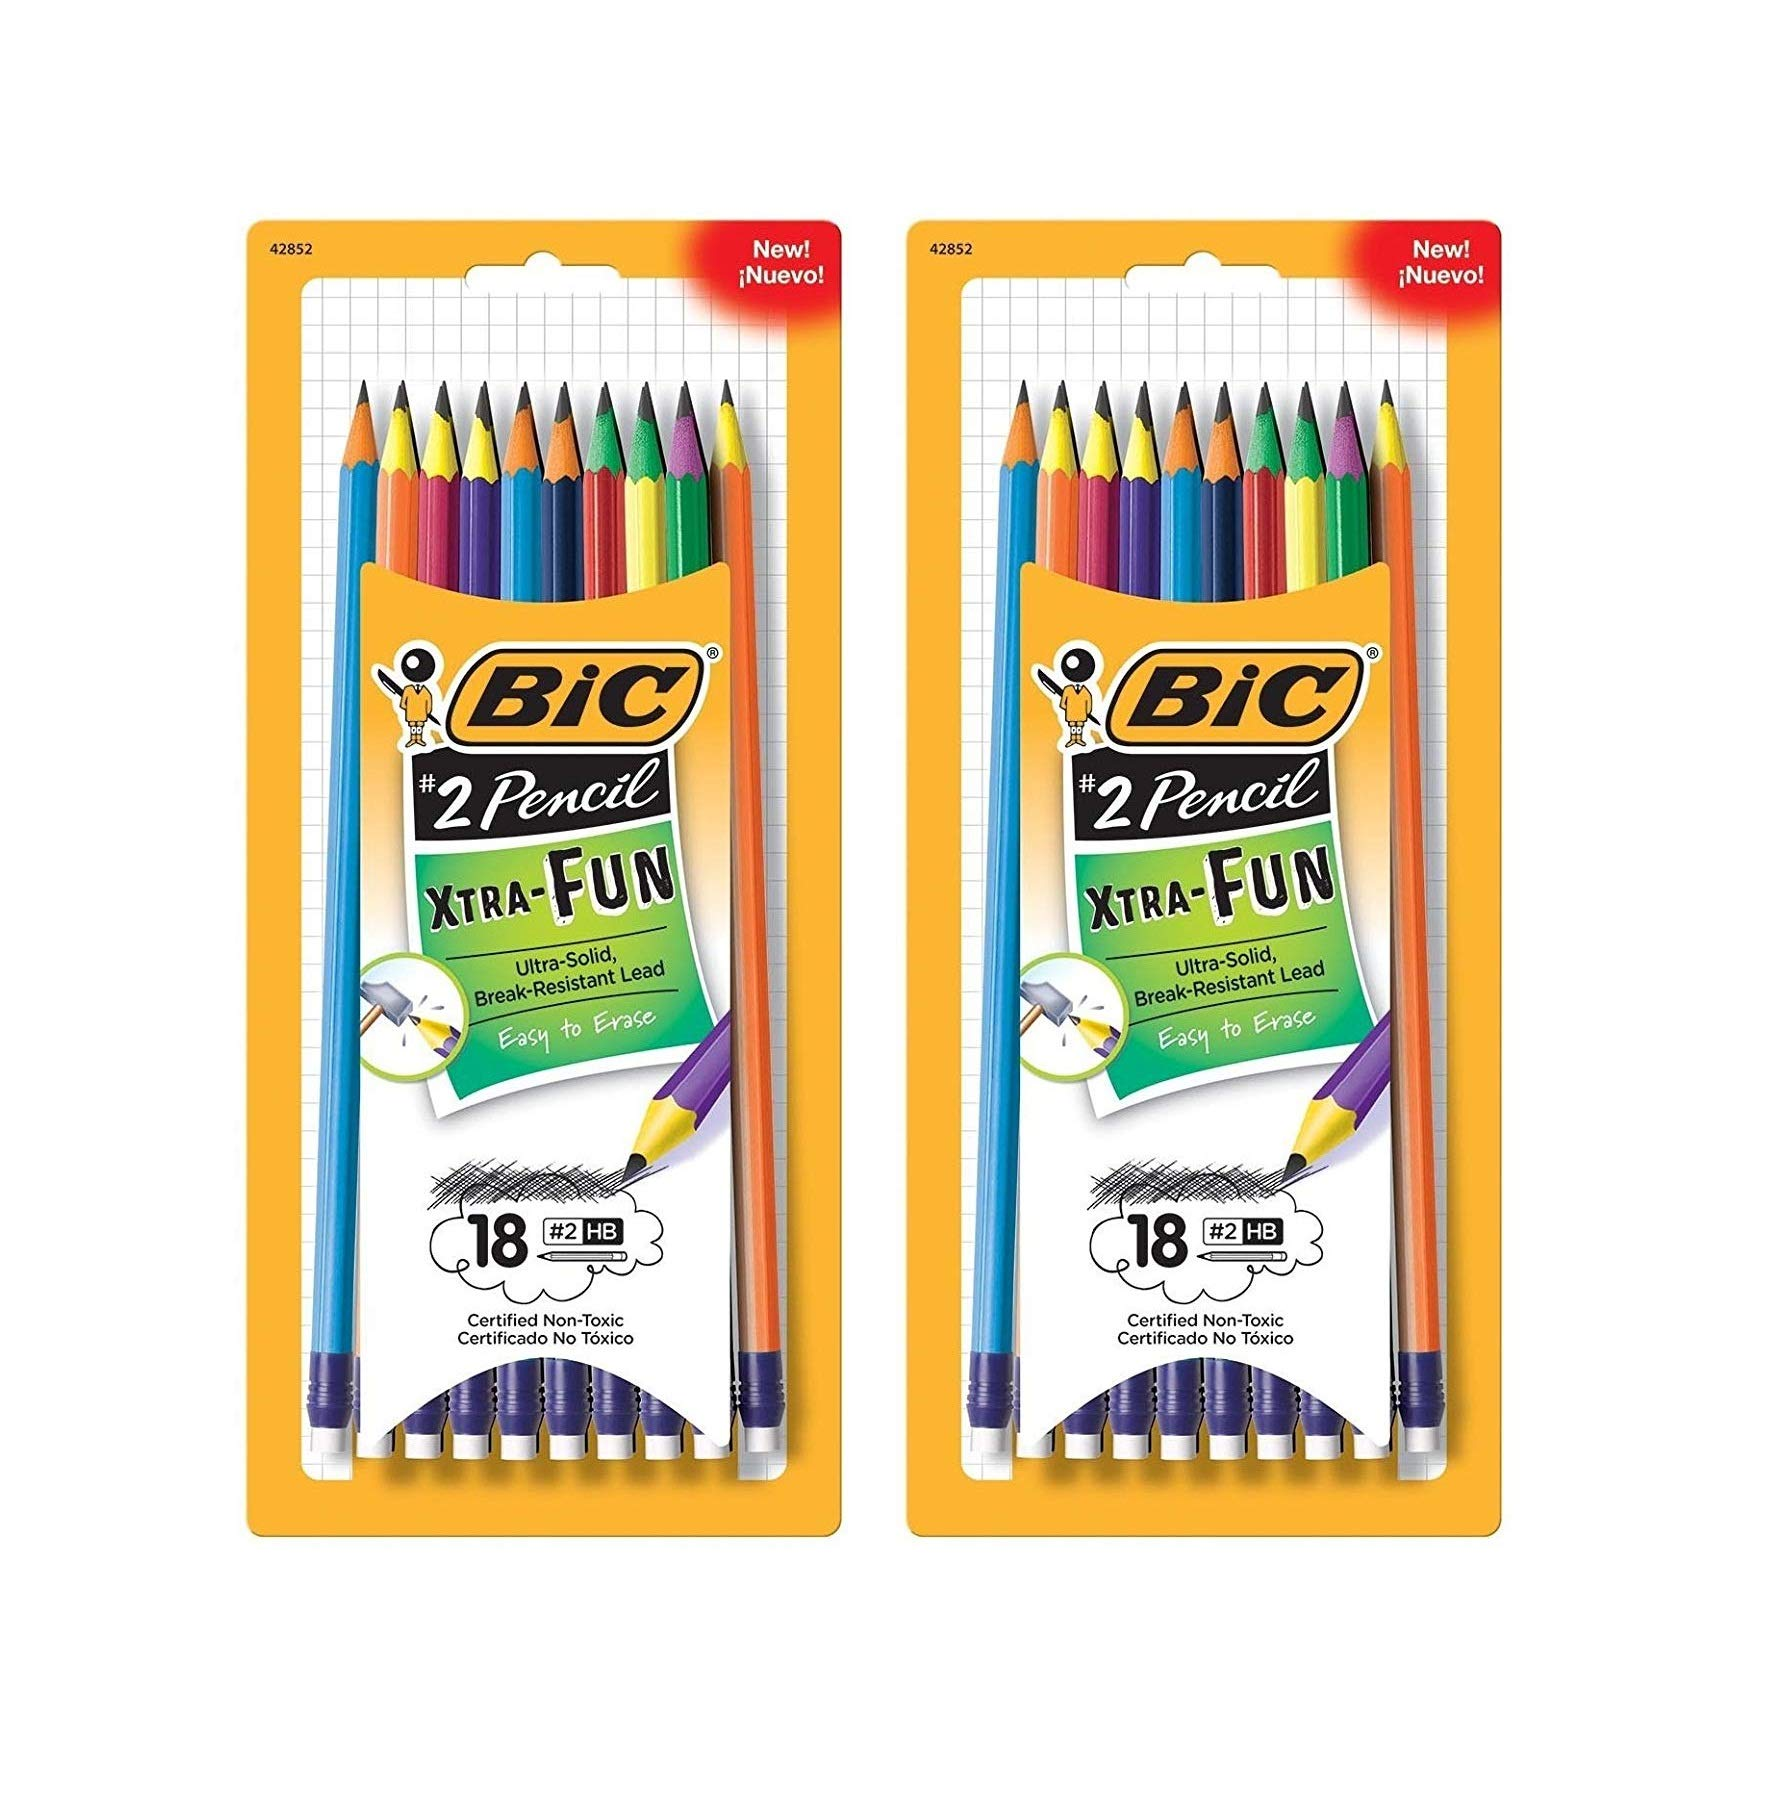 BIC Xtra-Fun Graphite Pencil, 2 HB, 36-Count by BIC